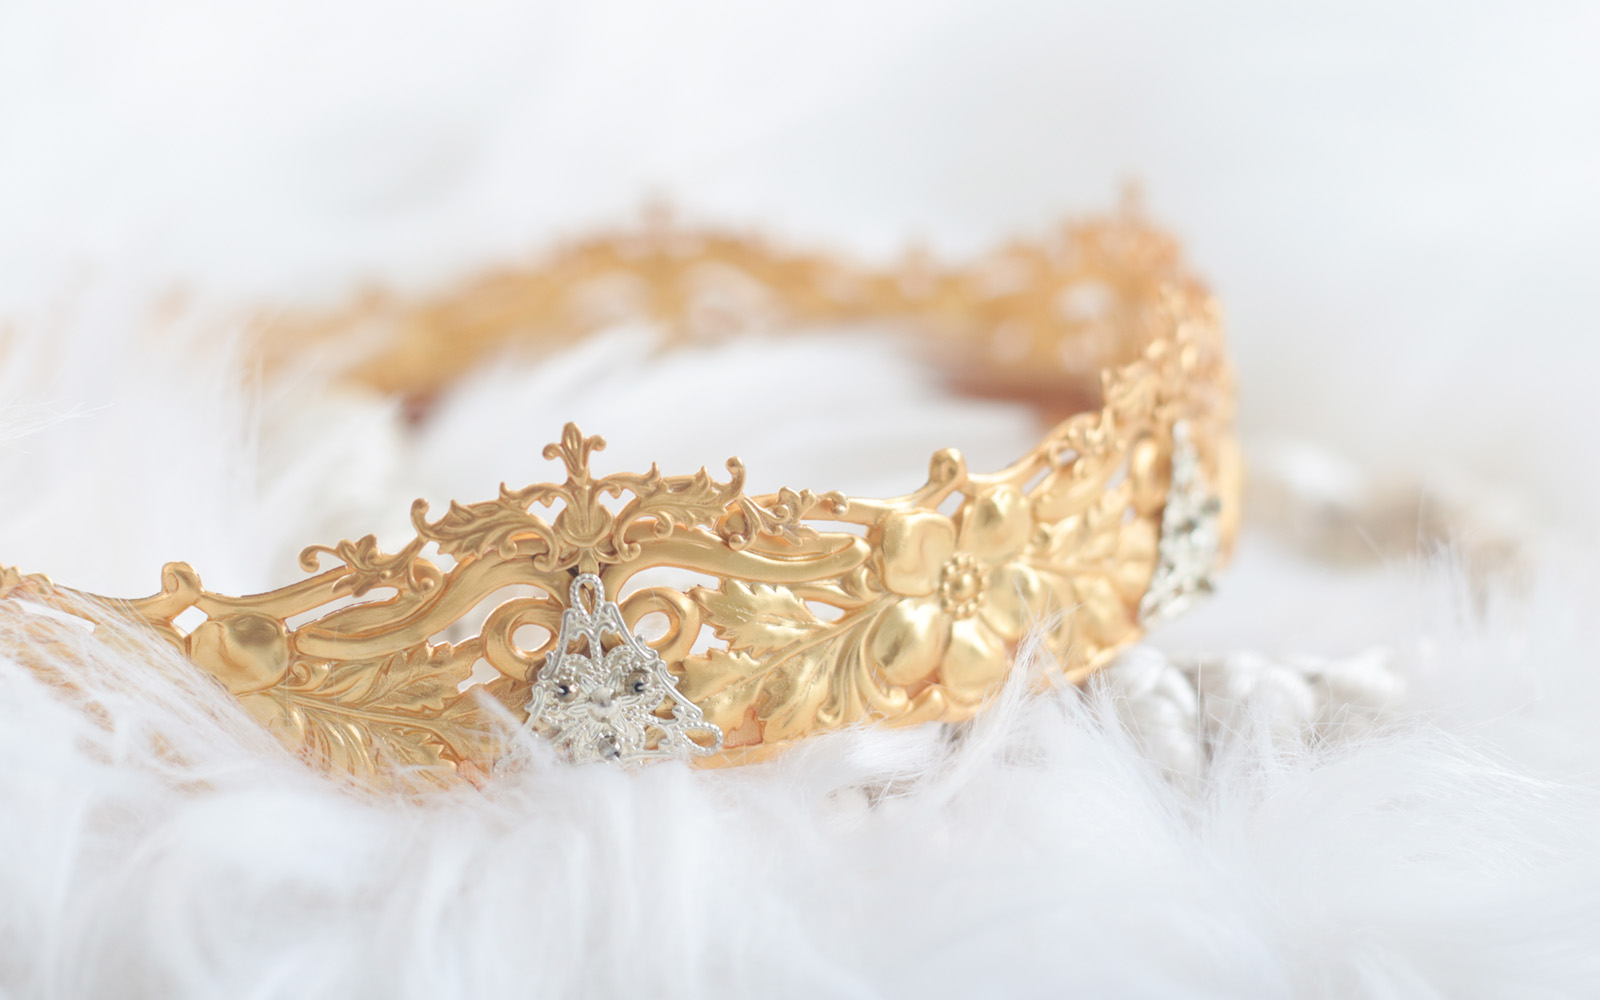 One of a Kind, Unique Crowns Celebrating Feminine Sovereignty